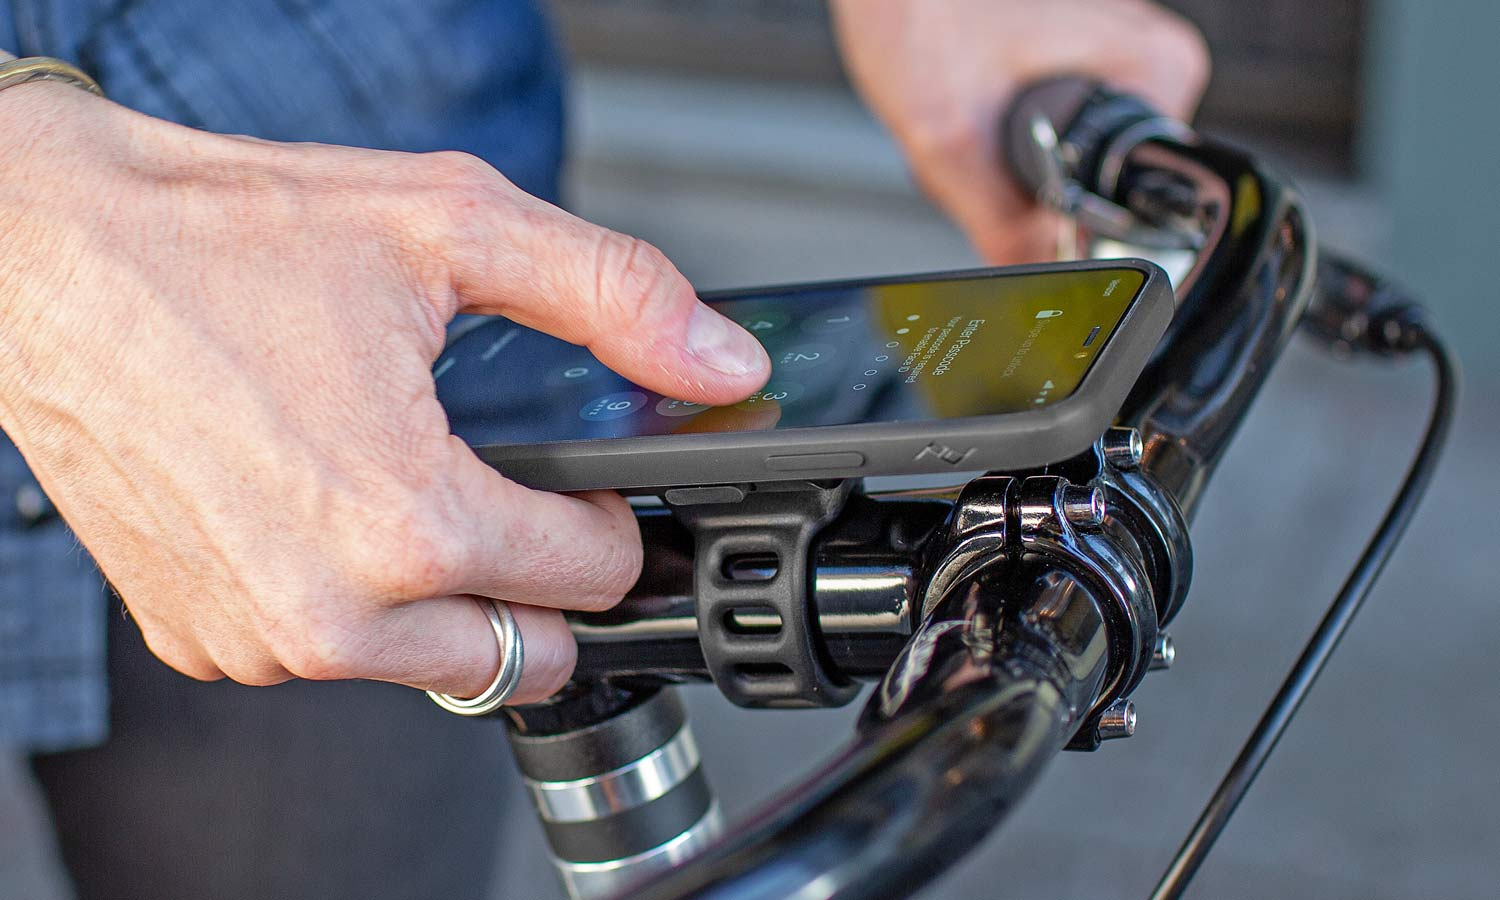 Mobile by Peak Design phone case and mounts, magnetic and secure locking mobile phone bike mounts everyday case charging adapters,universal bike mount